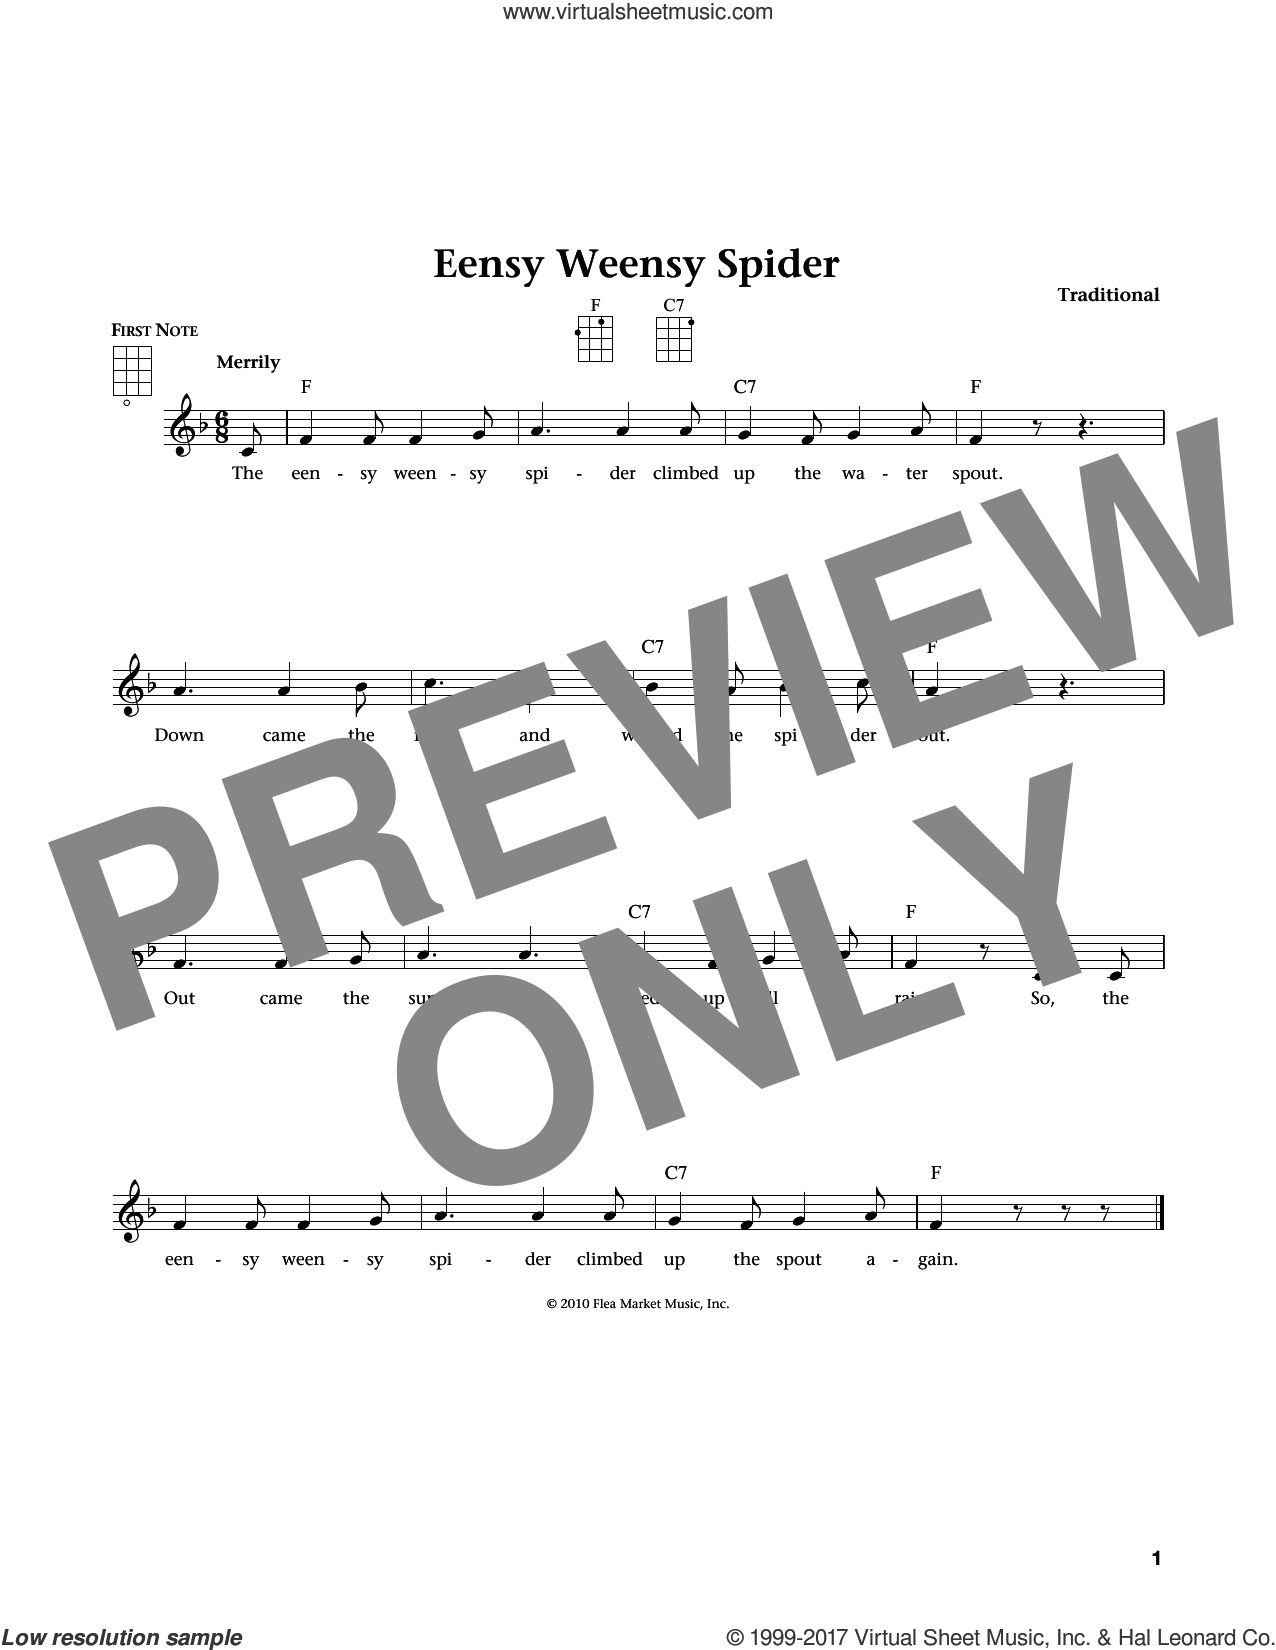 Eensy Weensy Spider (from The Daily Ukulele) (arr. Liz and Jim Beloff) sheet music for ukulele , Jim Beloff and Liz Beloff, intermediate skill level